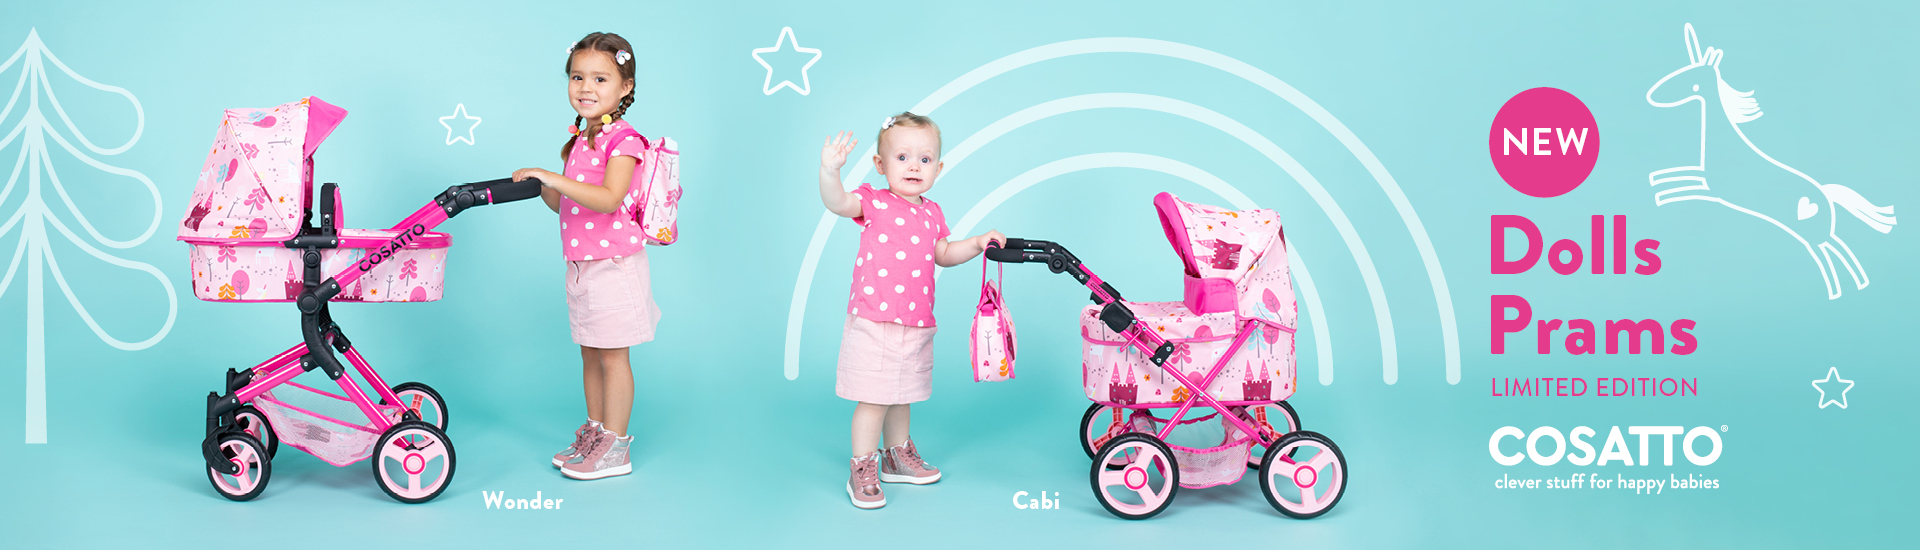 cosatto pink dolls prams with unicorn designs